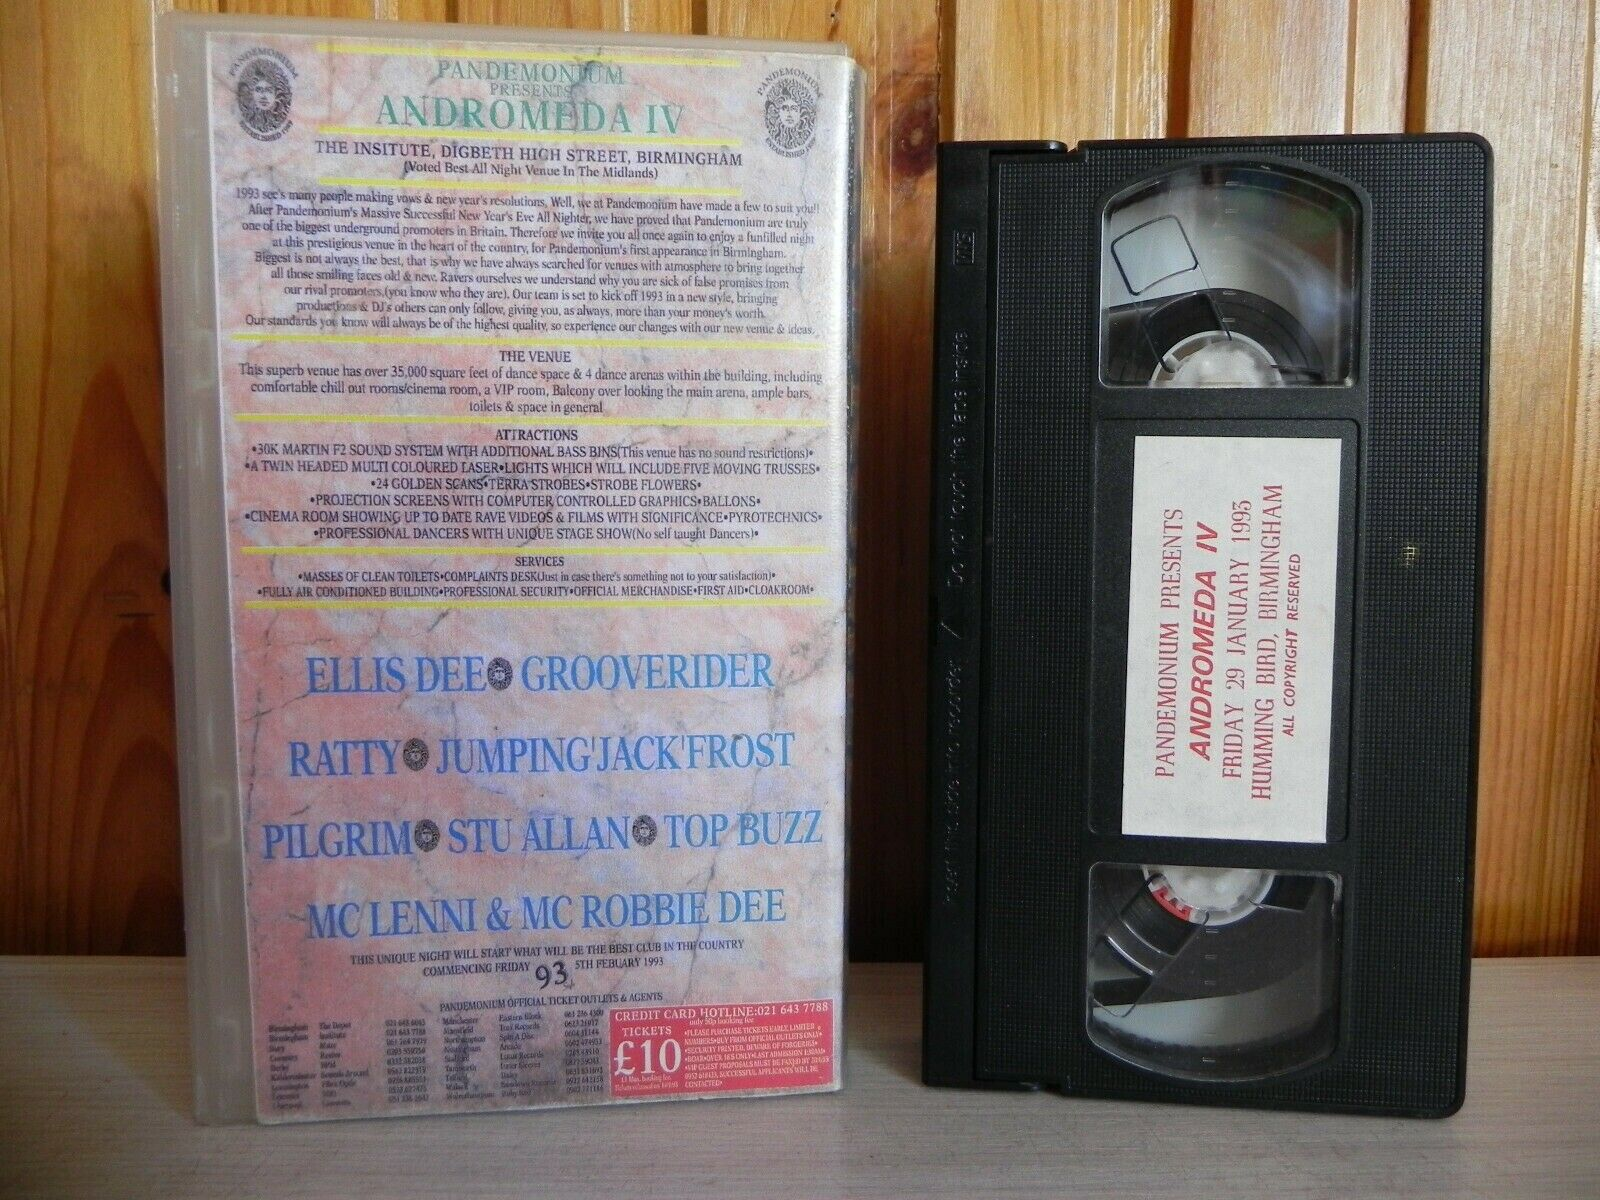 Pandemonium: Andromeda 4 (5th Feb '93) - Ellis Dee - Grooverider - Ratty - VHS